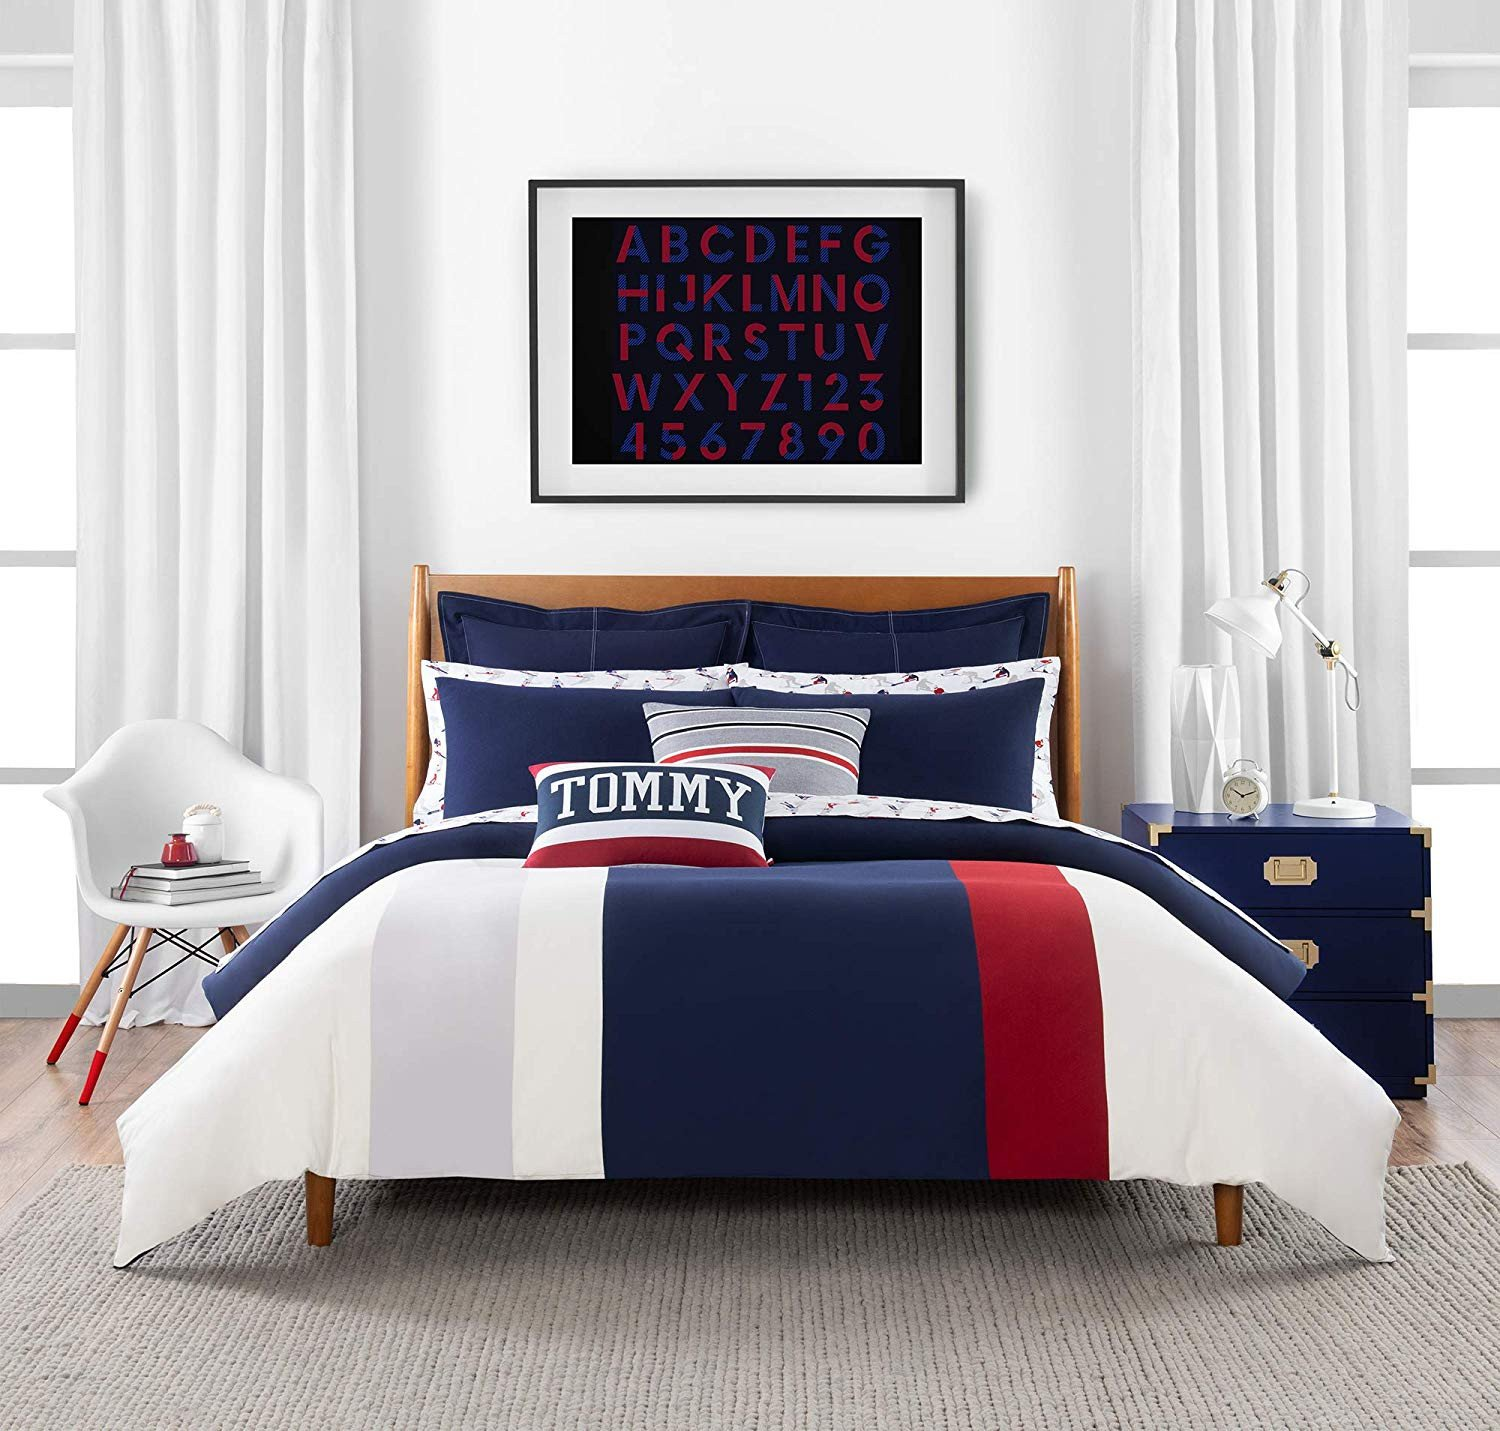 Queen Size Bedroom Set Lovely Amazon tommy Hilfiger Clash Of 85 Stripe Bedding